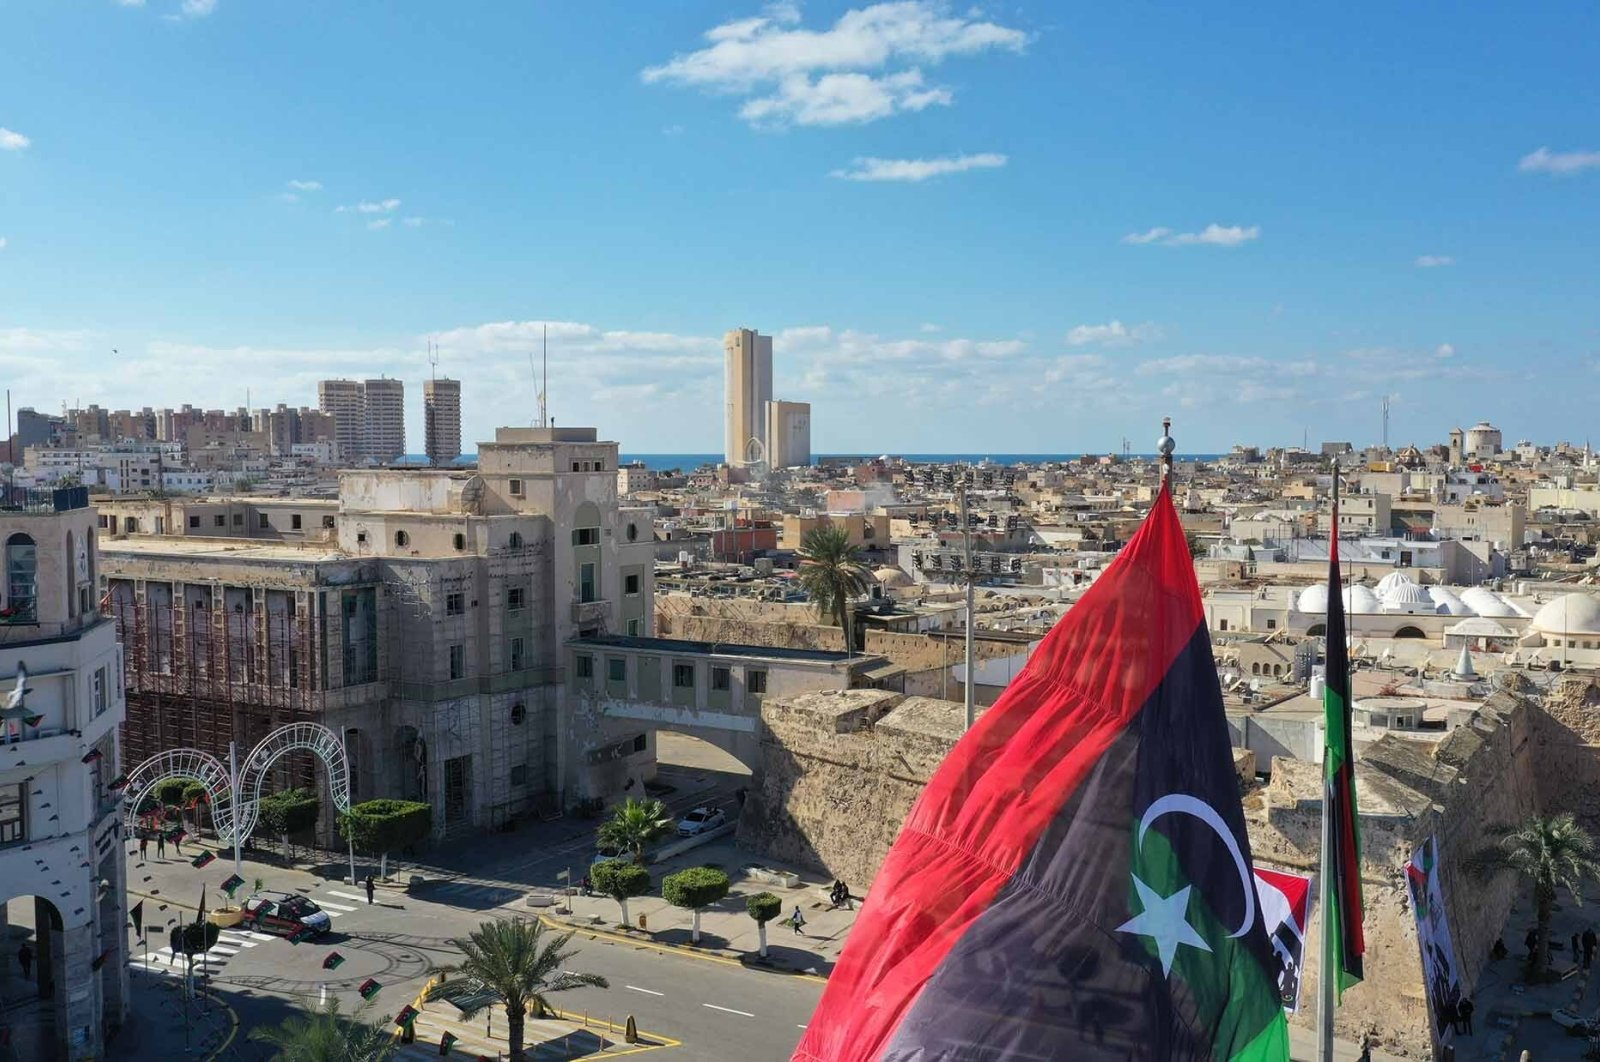 Martyrs' Square a day ahead of commemorations of the 10th anniversary of the uprising against Moammar Gadhafi, Feb. 16, 2021. (Shutterstock File Photo)